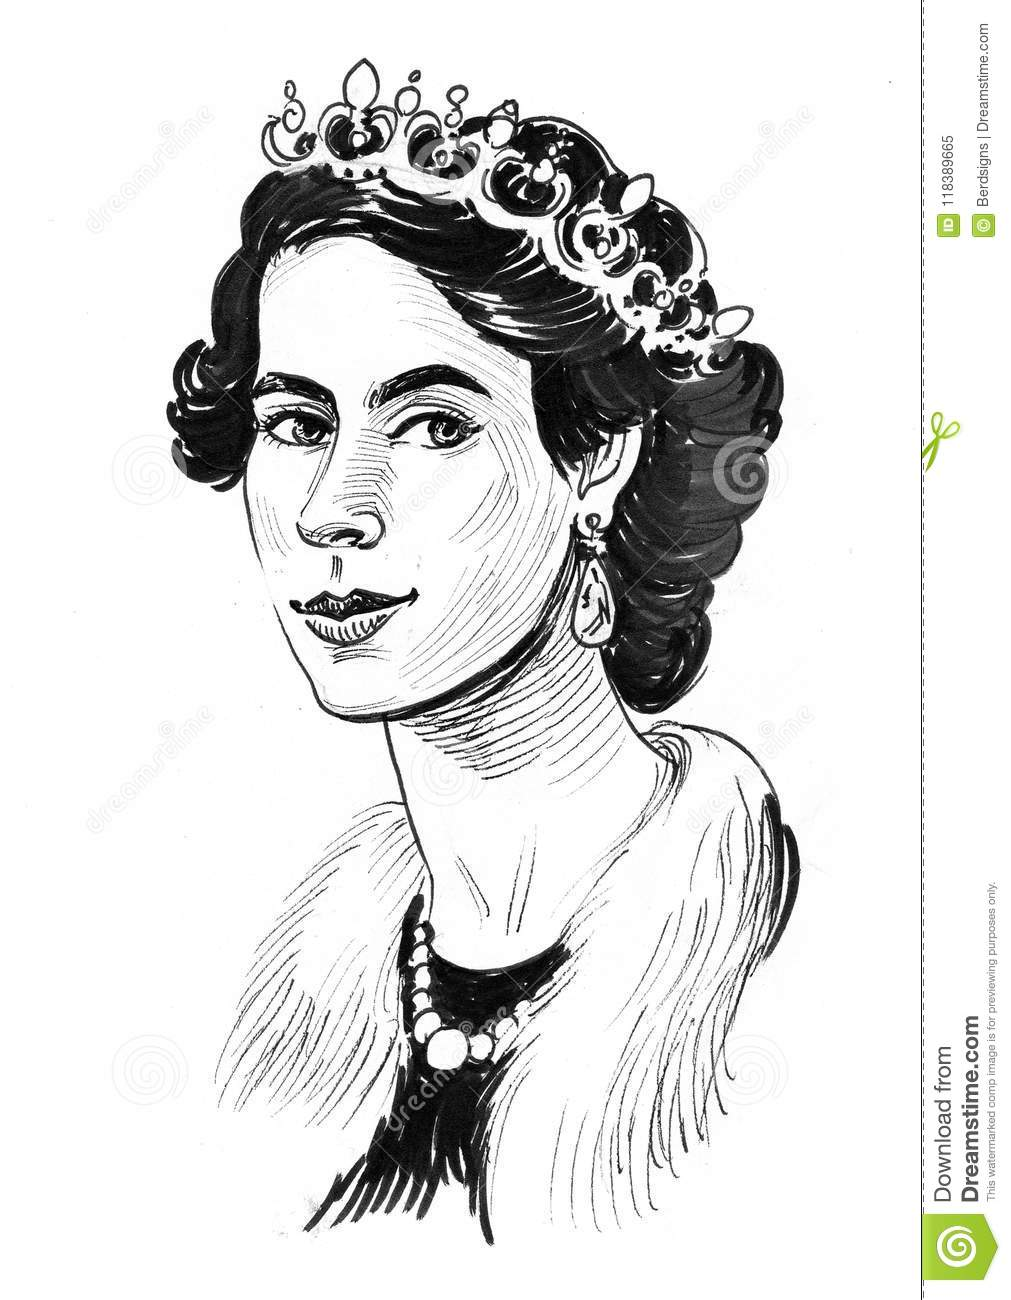 Ink black and white portrait of a queen elizabeth 2